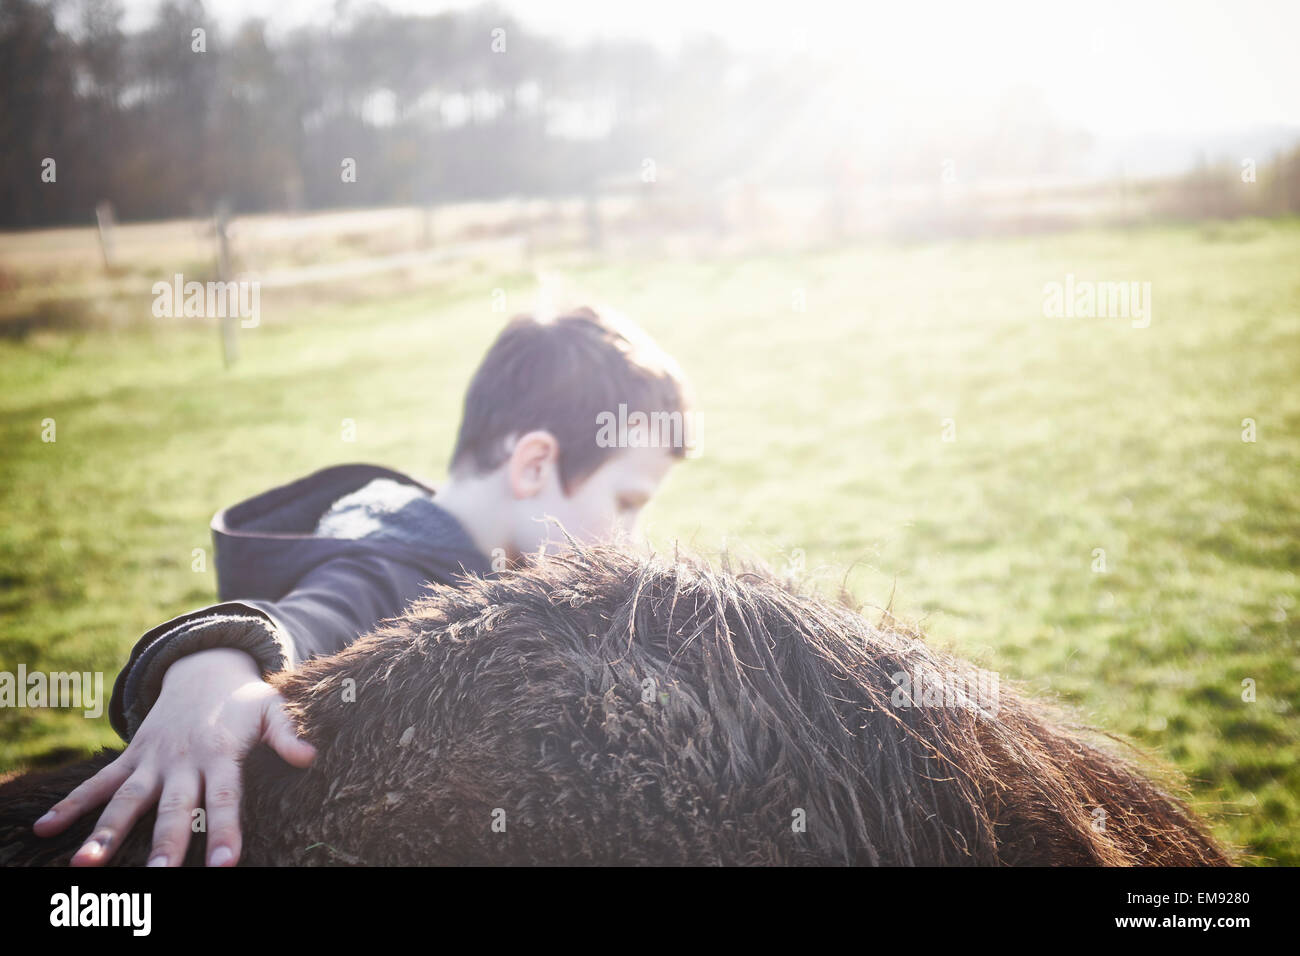 Boy And Horse High Resolution Stock Photography And Images Alamy